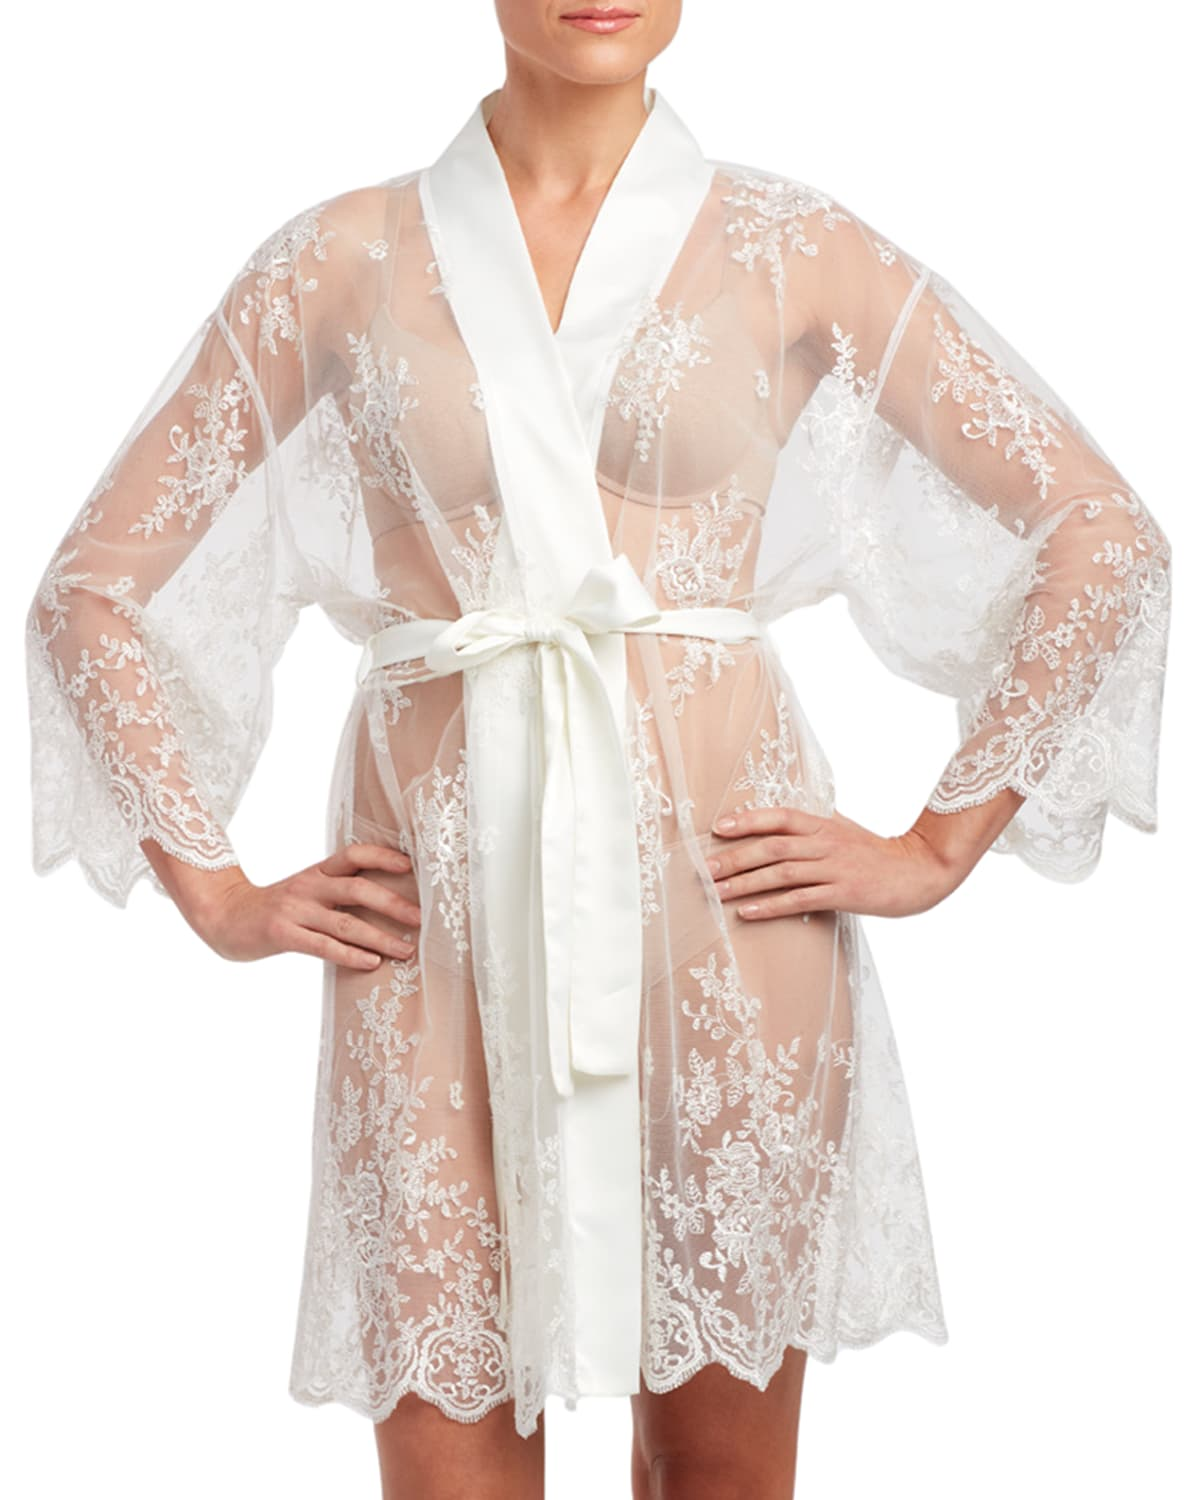 Darling Lace Coverup Robe